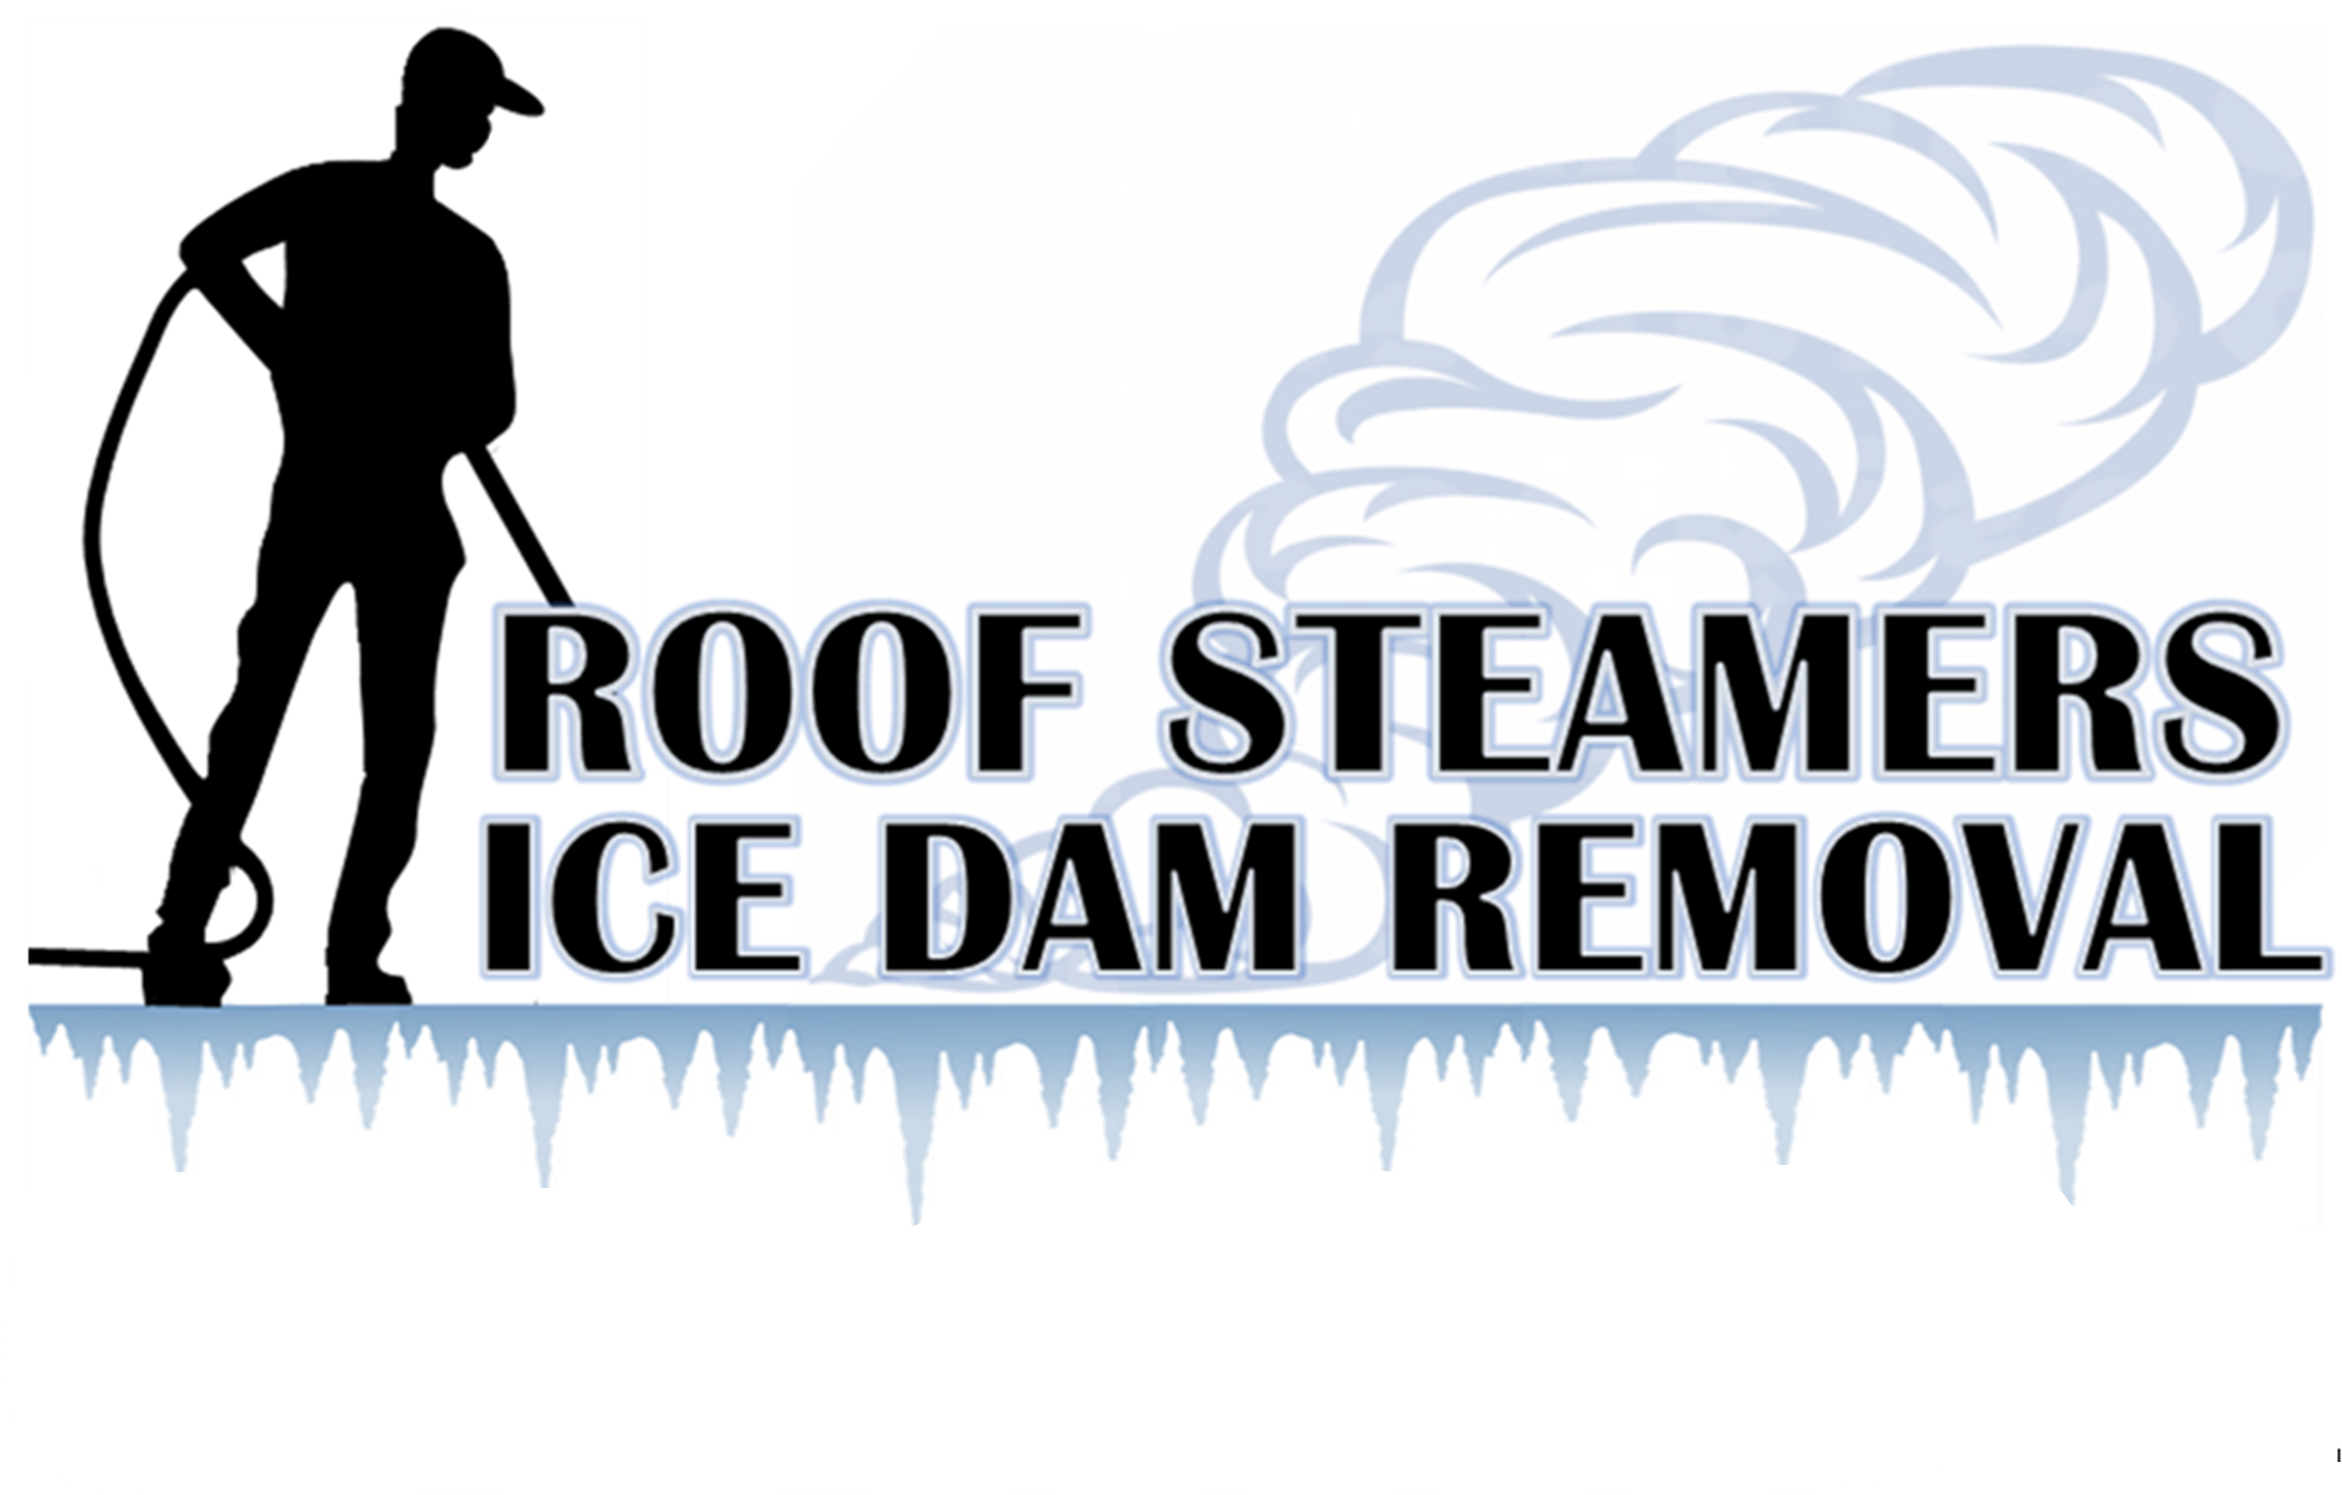 Roof Steamers